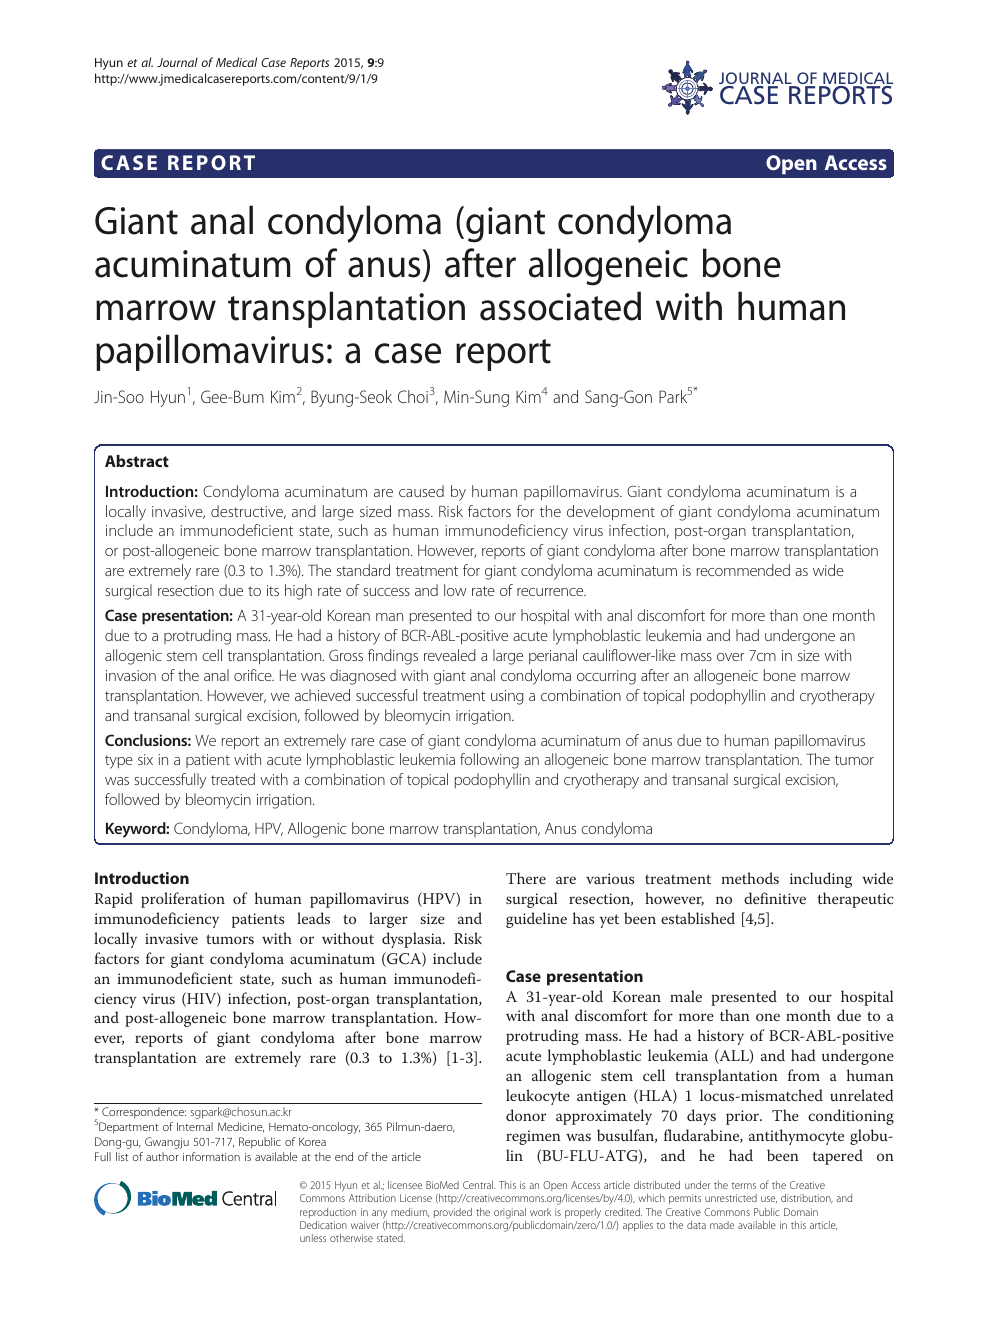 condyloma acuminata literature review)